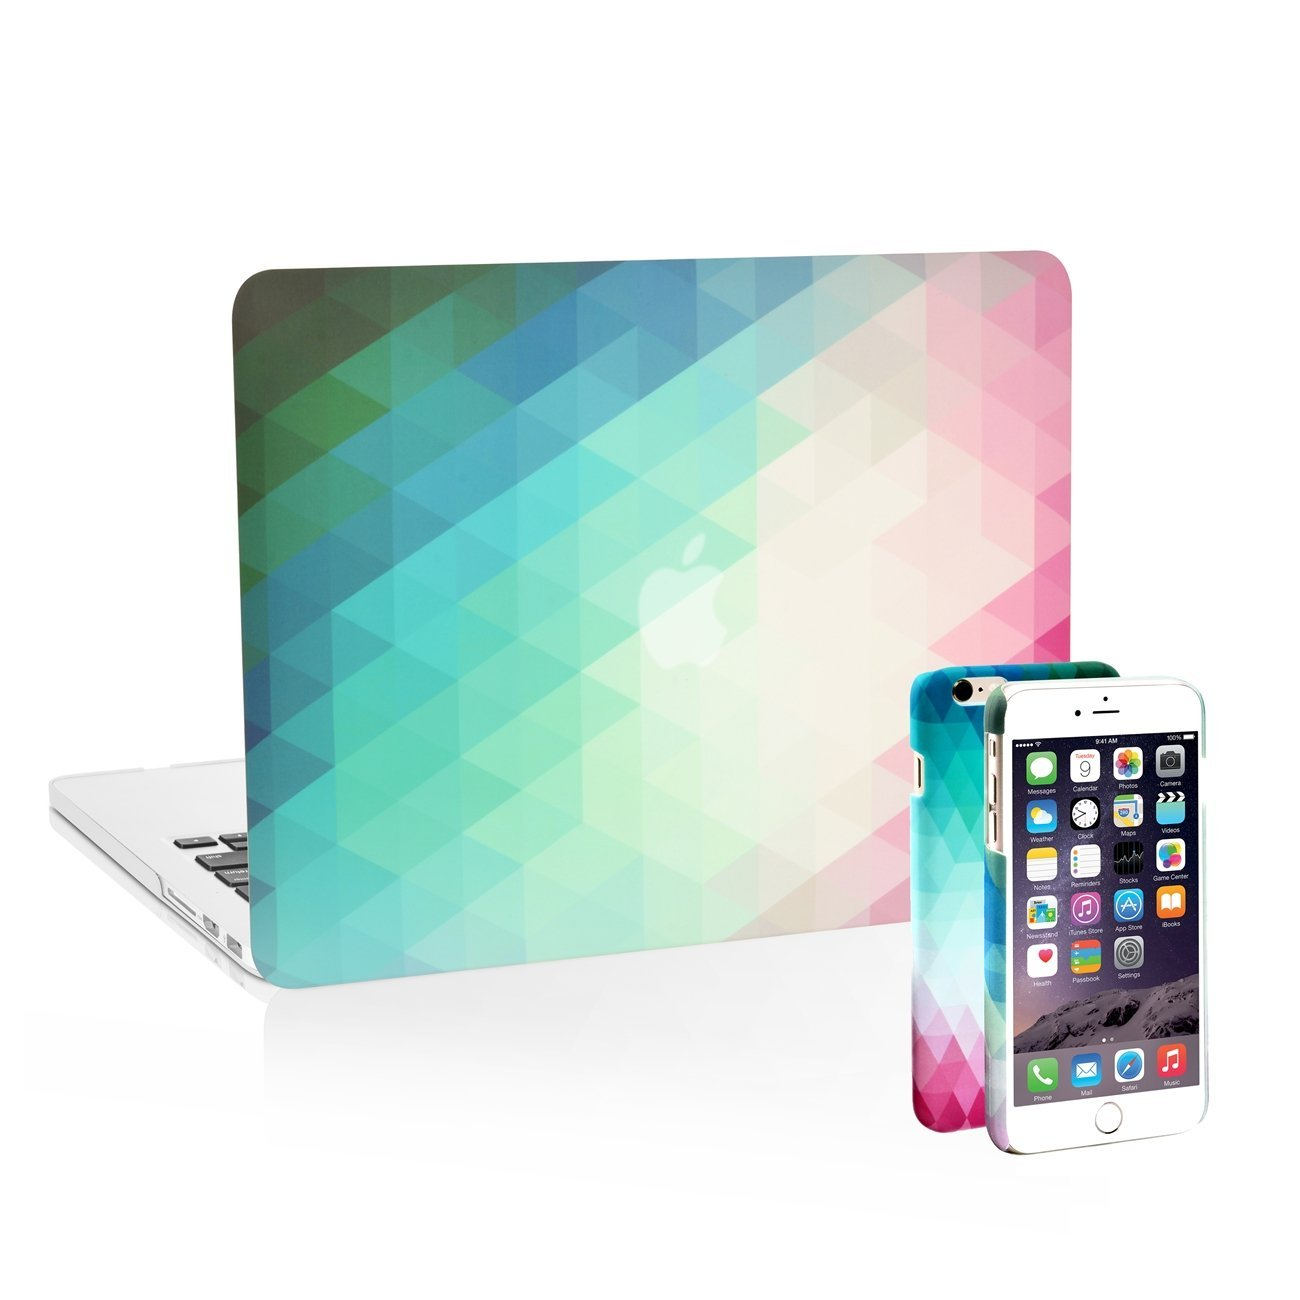 "UNIK CASE-2in1 iPhone (6/6s) Plus Case with Matching Gradient Ombre Graphic Hard Shell Case for Retina 13"" Macbook Pro (A1502/A1425)"